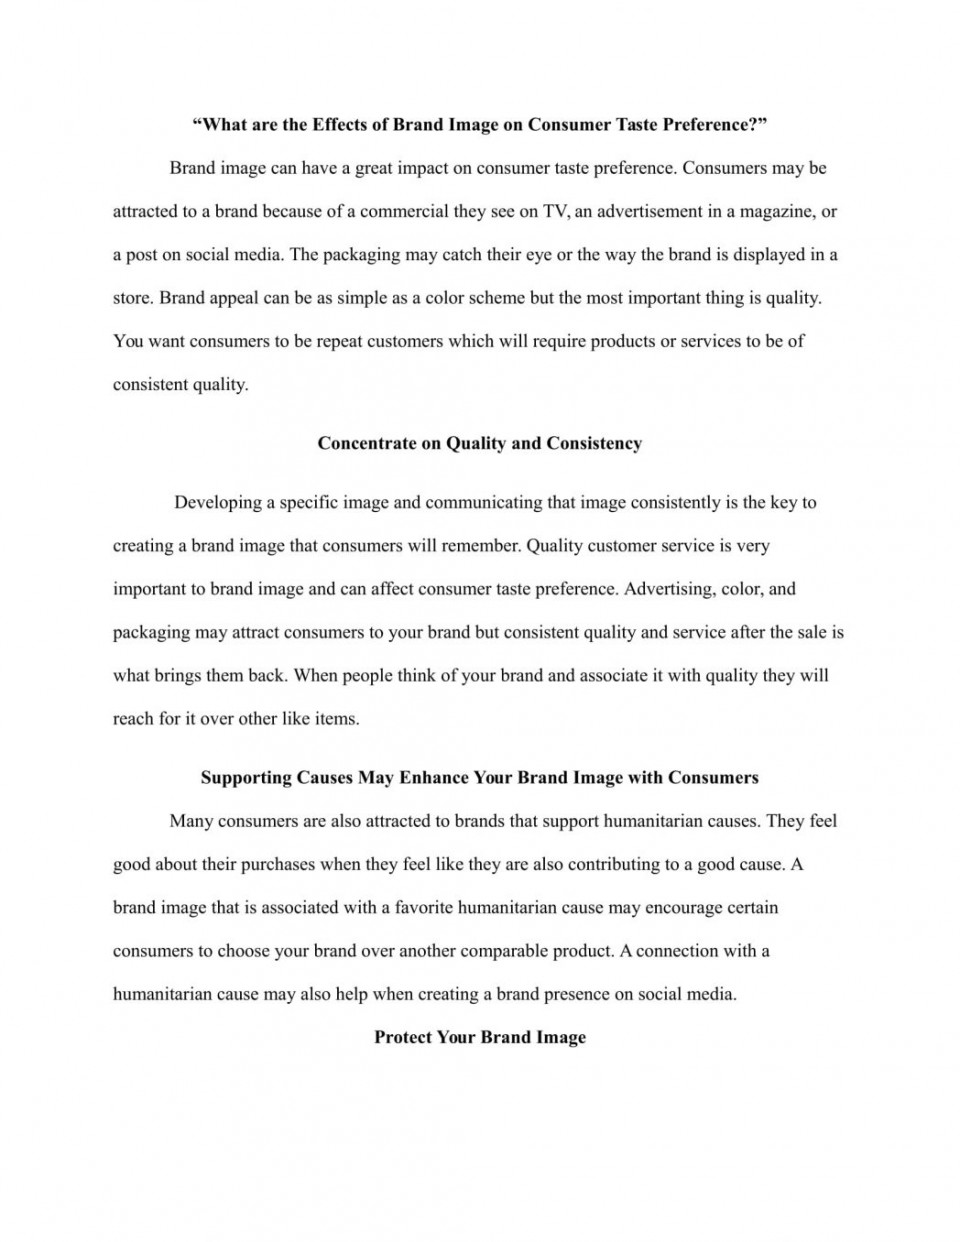 006 Essay File Expository Sample Jpg Volunteer Service Exploratory Topicss Sam Introduction Free Research Thesis 1048x1356 Awful Topics About Technology For College Medicine 960